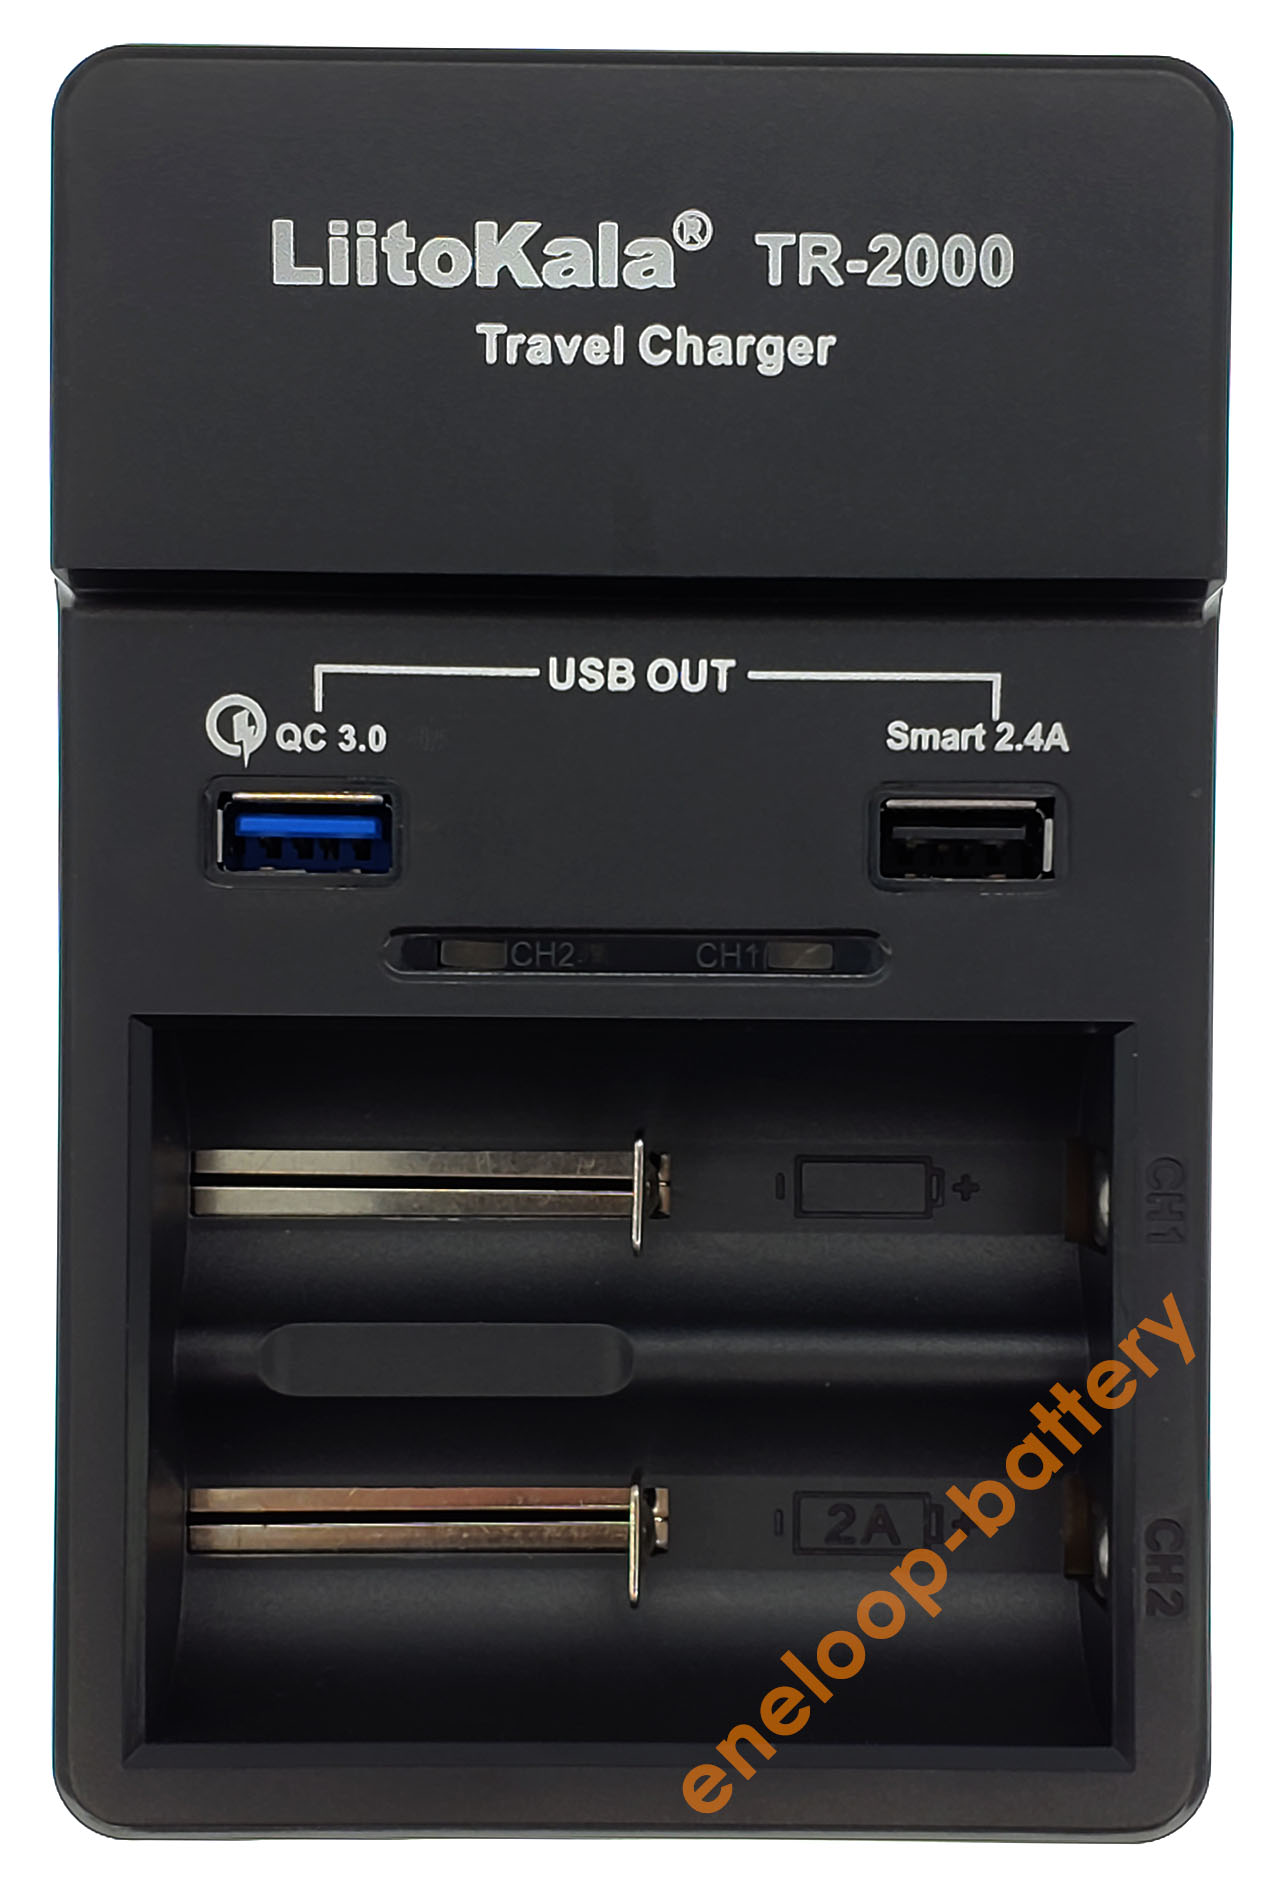 TR-2000 Travel Charger